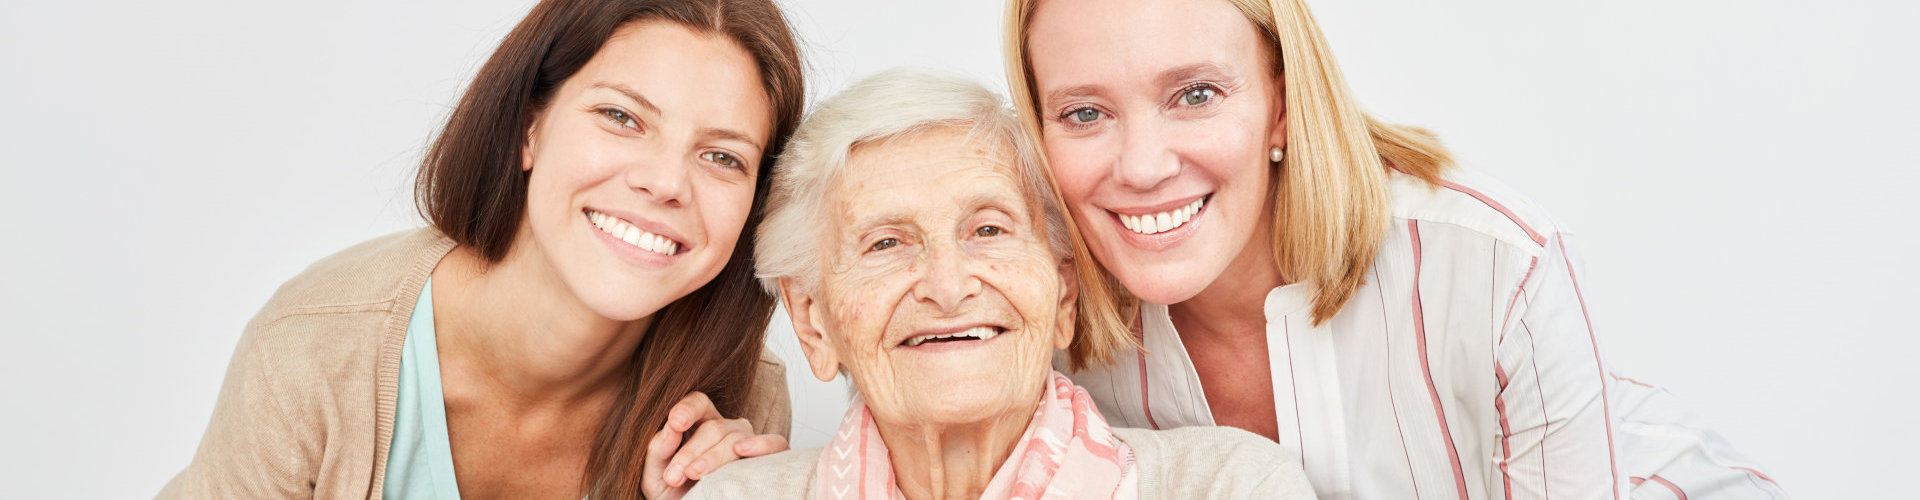 caregivers and old woman smiling